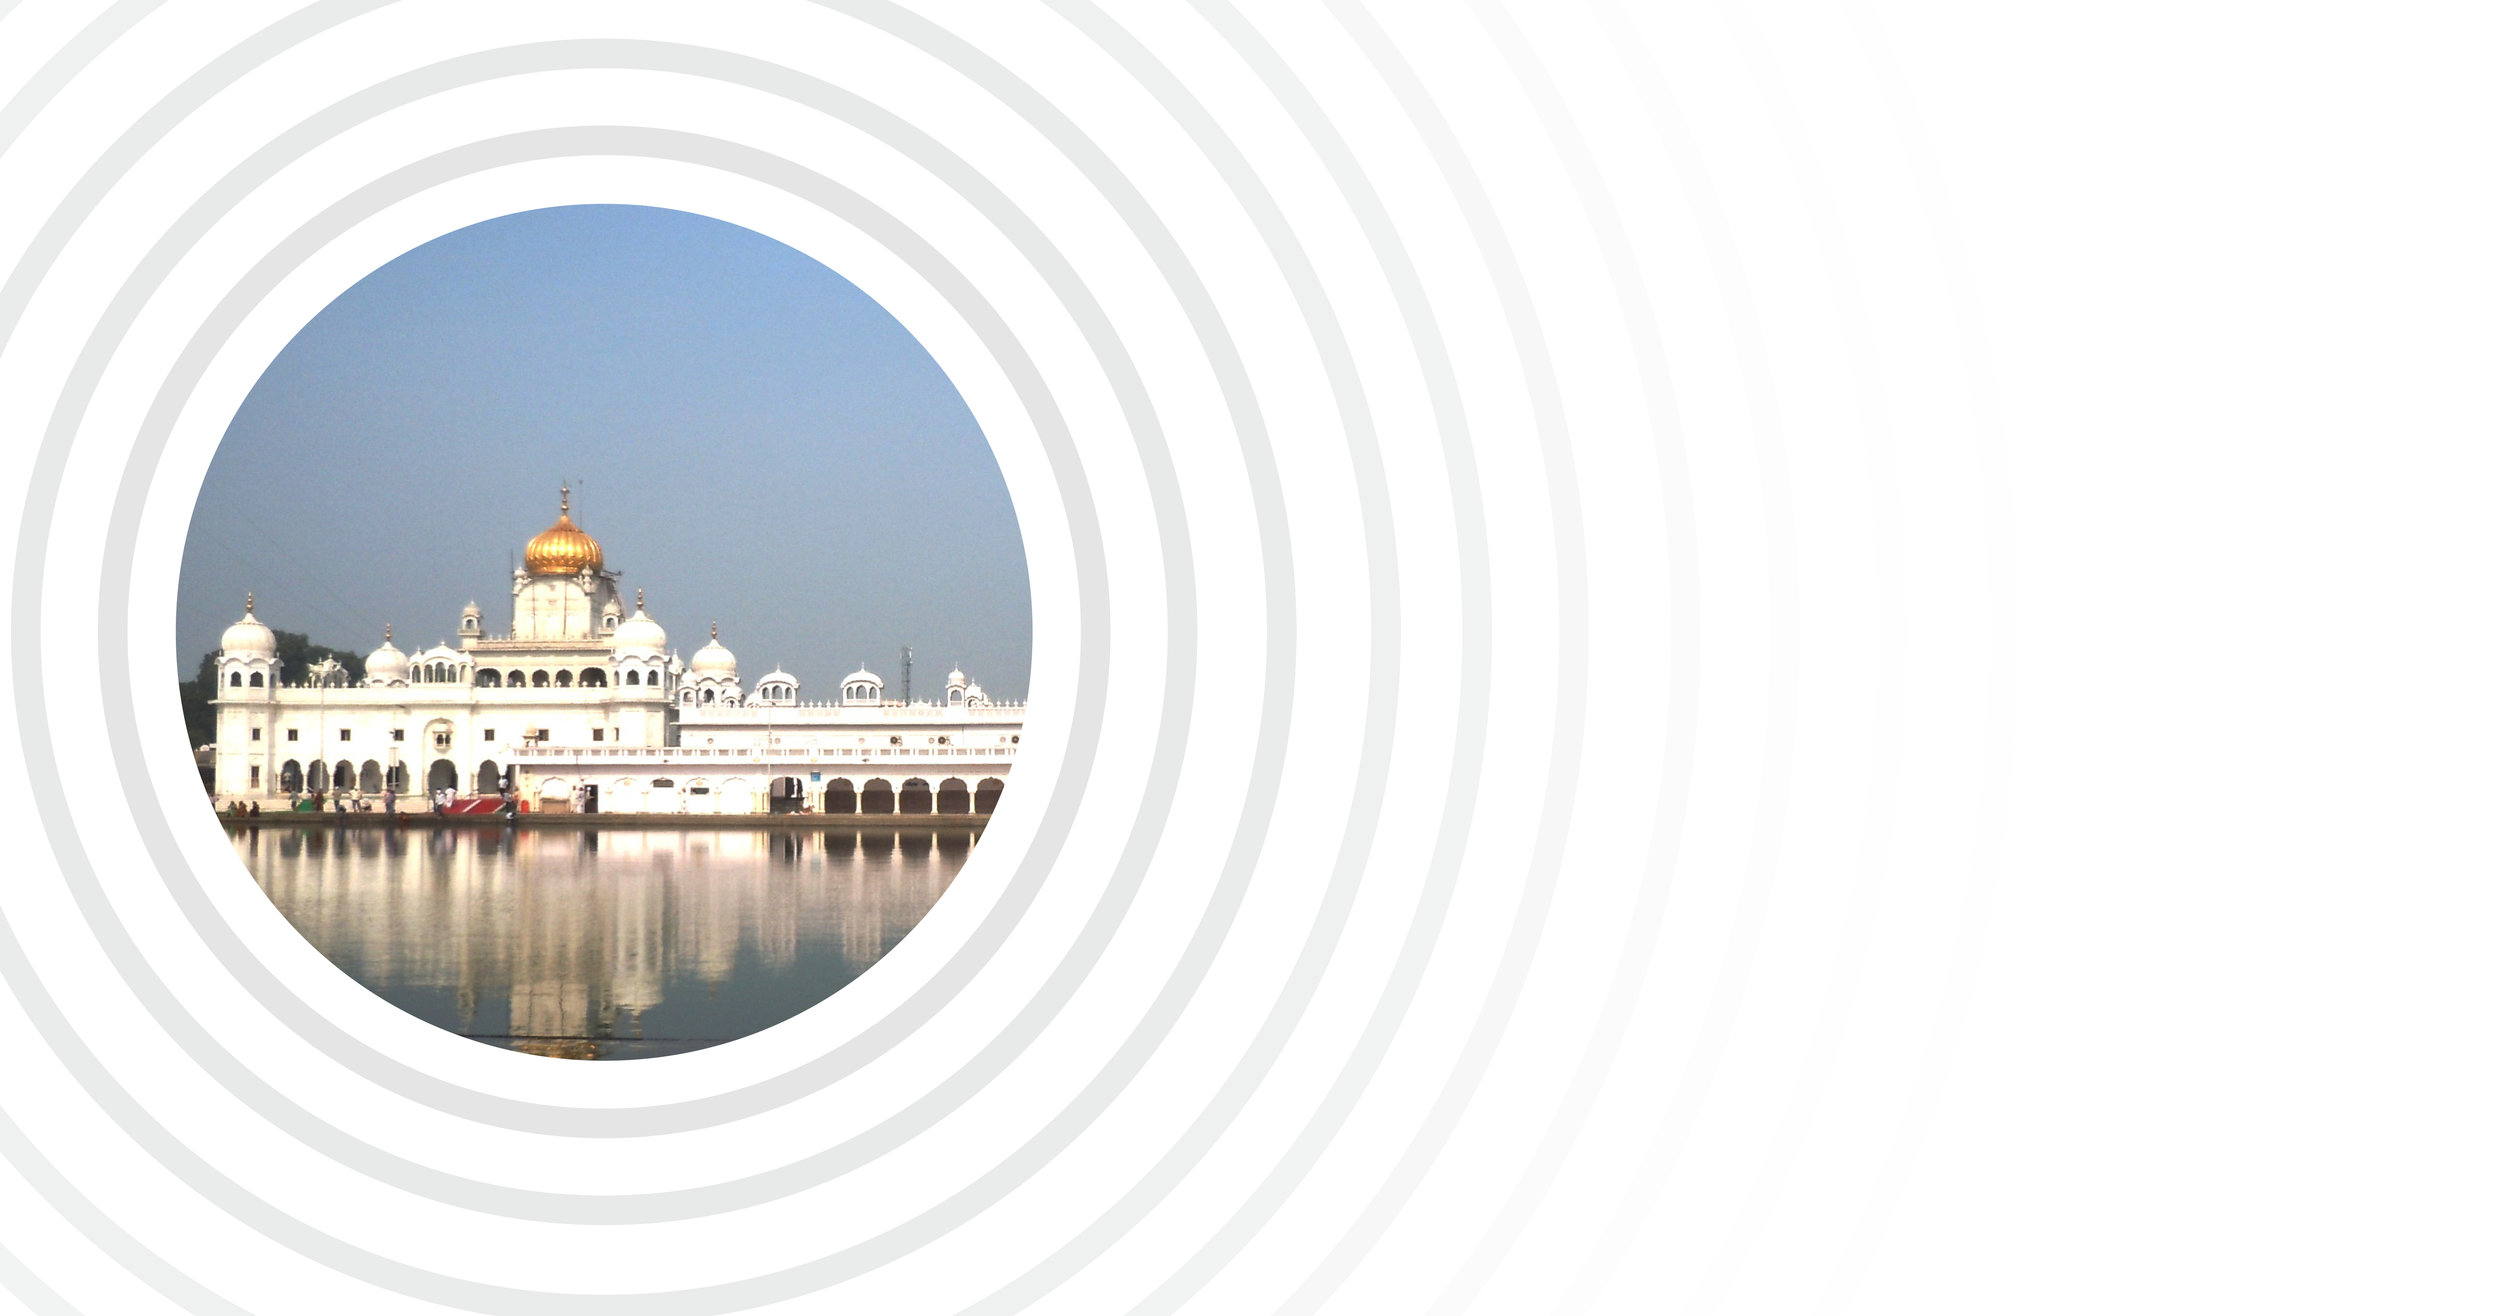 - The Community Systems Foundation's OpenCities Institute worked with the City of Patiala in Punjab, India to develop a proof-of-concept city-level SDG data system, demonstrating the simplicity, feasibility, and value of subnational SDG monitoring through data visualization design and technology. This project was part of the LDA-SI 2018-2019 microgrant program.